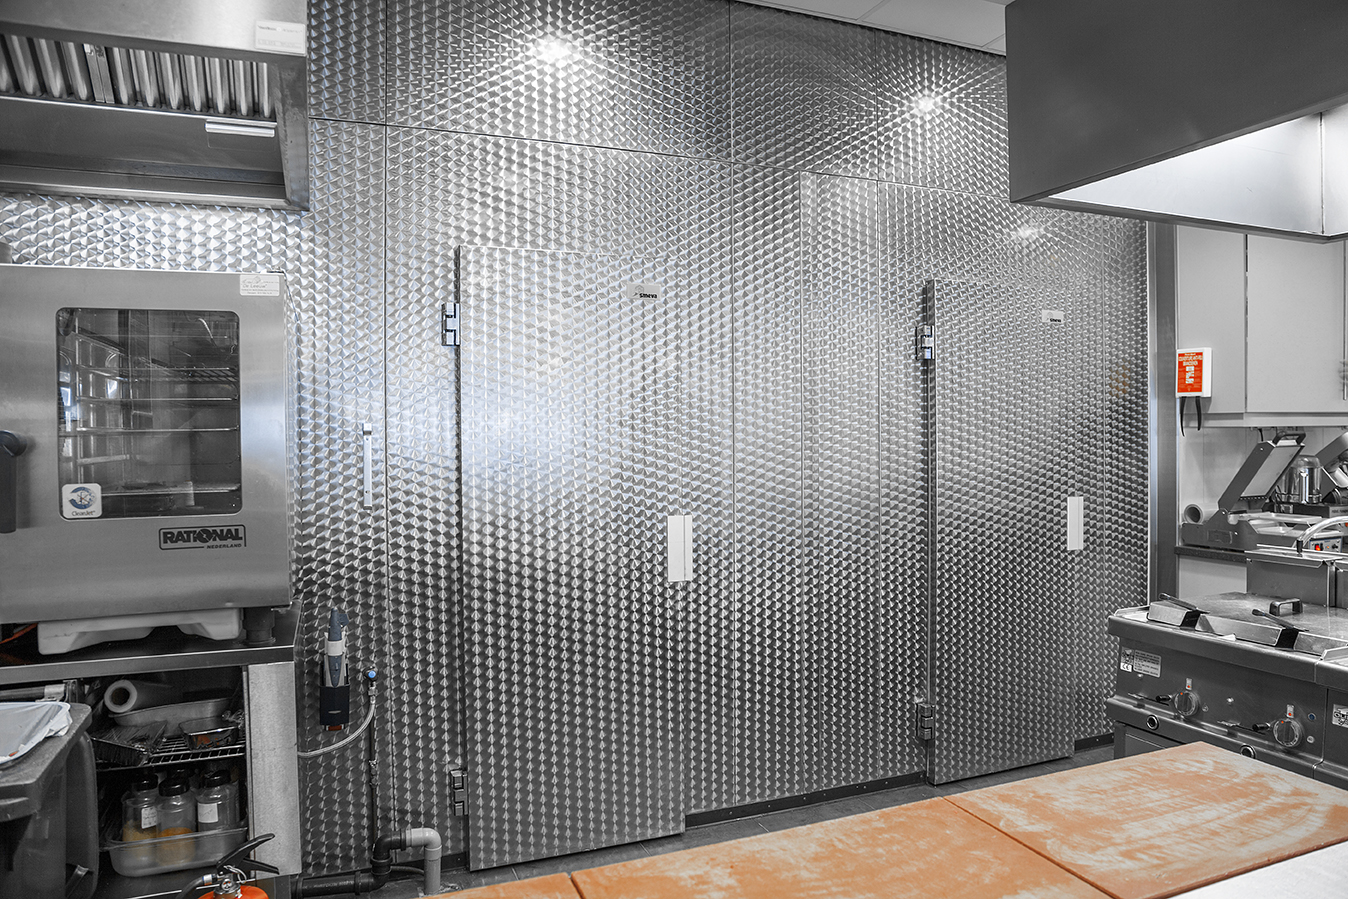 Custom made Smeva cold rooms showing a decorative stainless steel finish